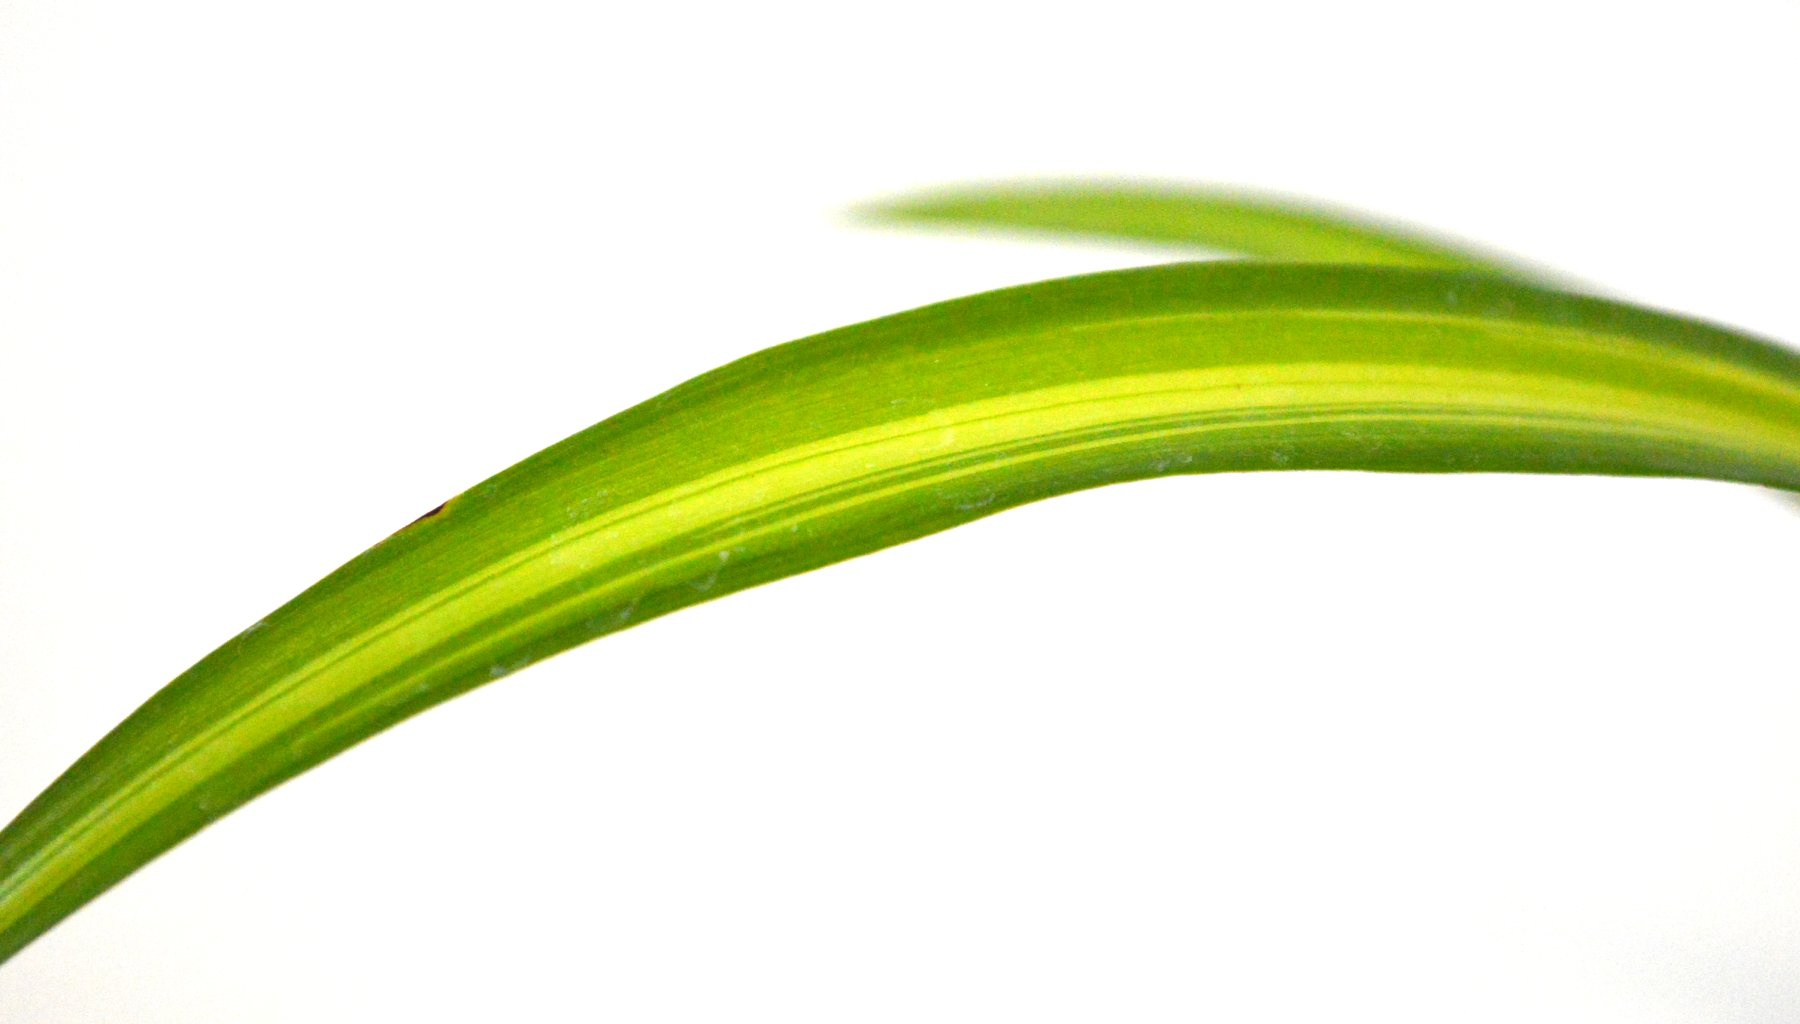 9GreenBox - Ocean Spider Plant - Easy to Grow - Cleans The Air - New - 2 Pack by 9GreenBox.com (Image #5)